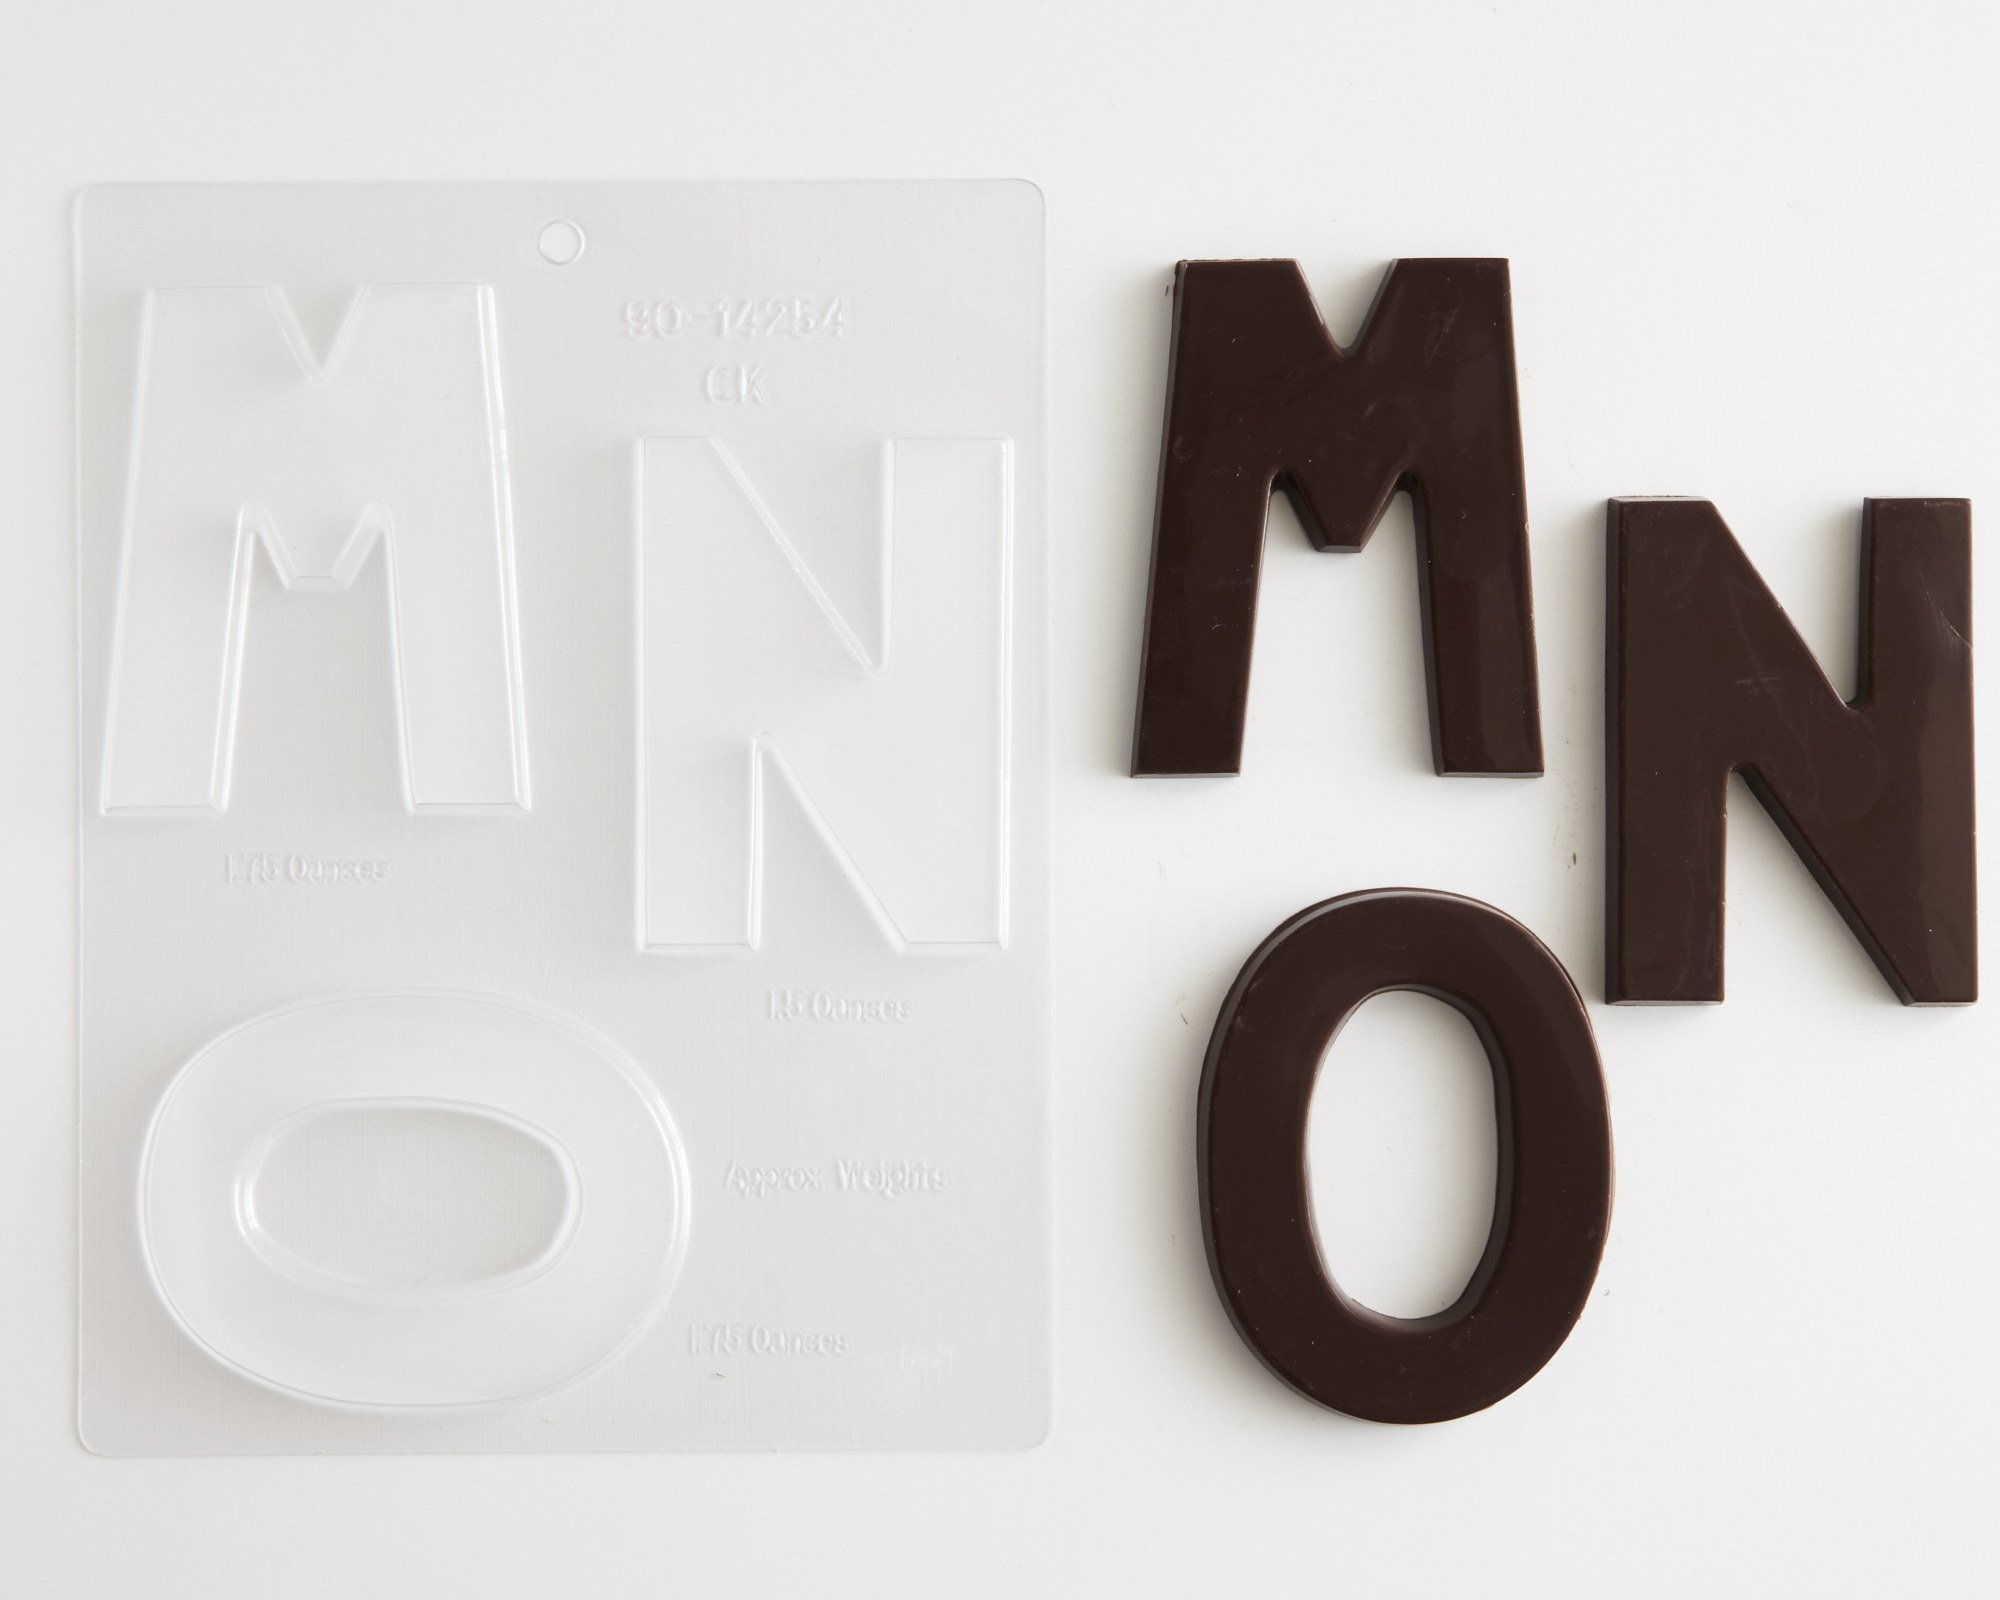 Large Block Letters Chocolate Candy Molds - A - Z (8) 4'' Letter Alphabet Set (Cakegirls Chocolate Mold Instructions Included) by Cakegirls (Image #5)